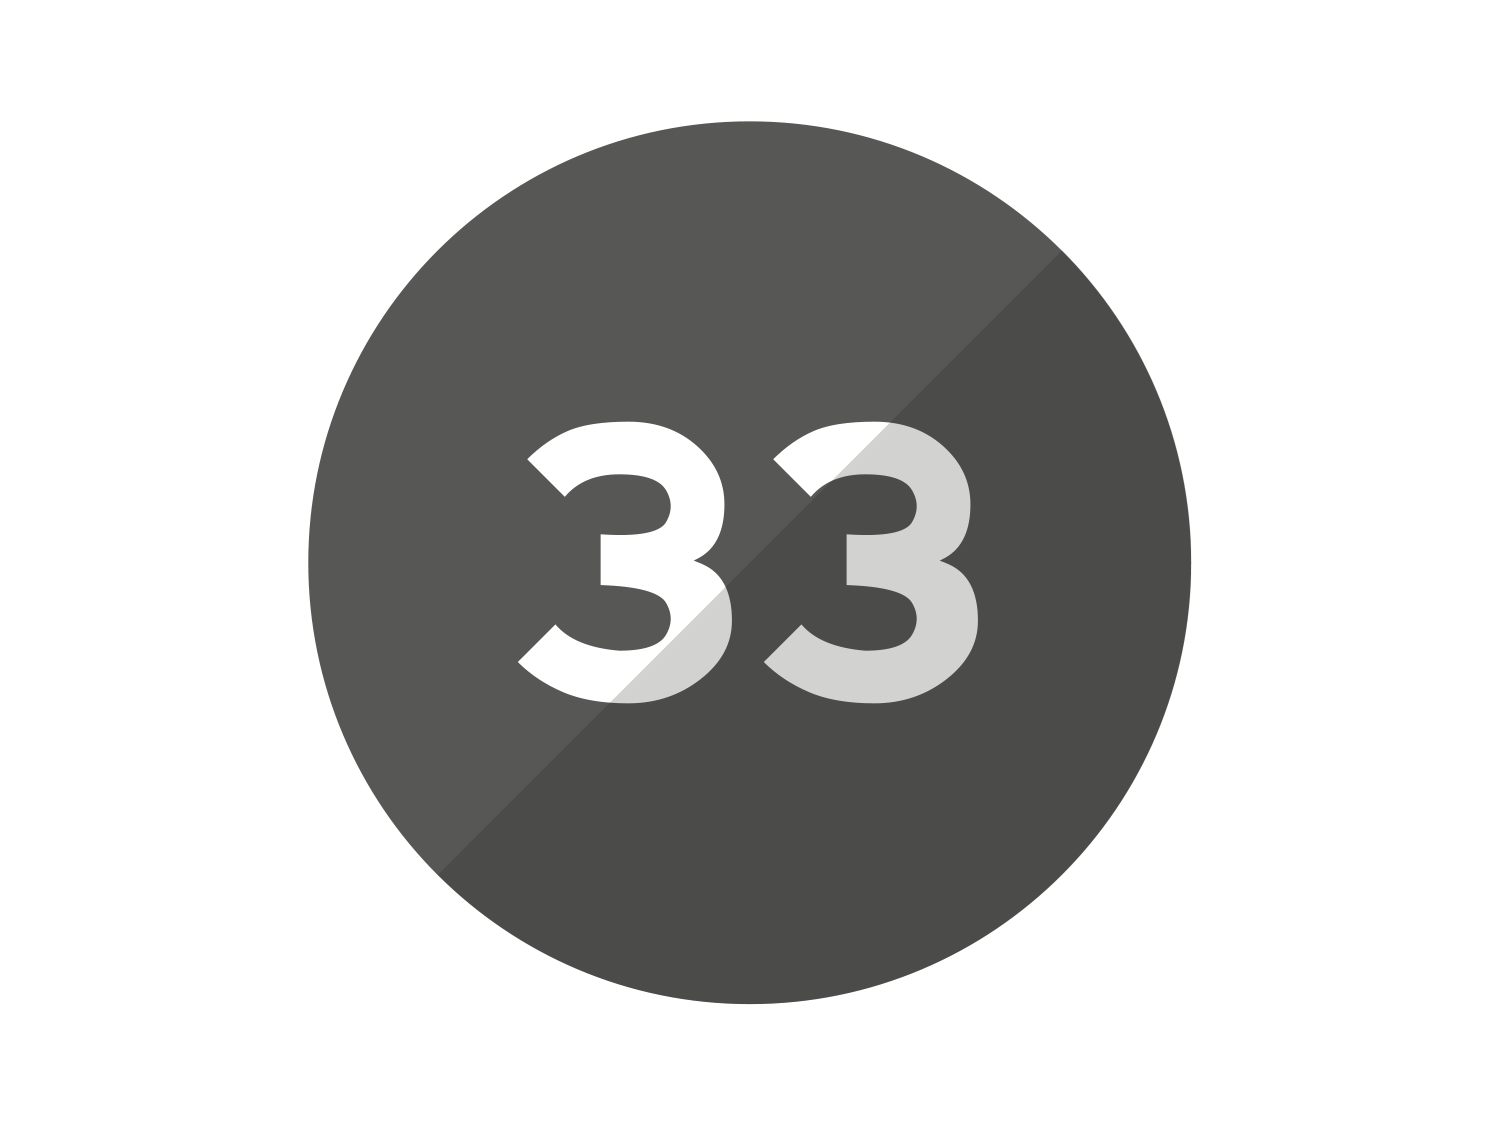 Number 33 in Numerology